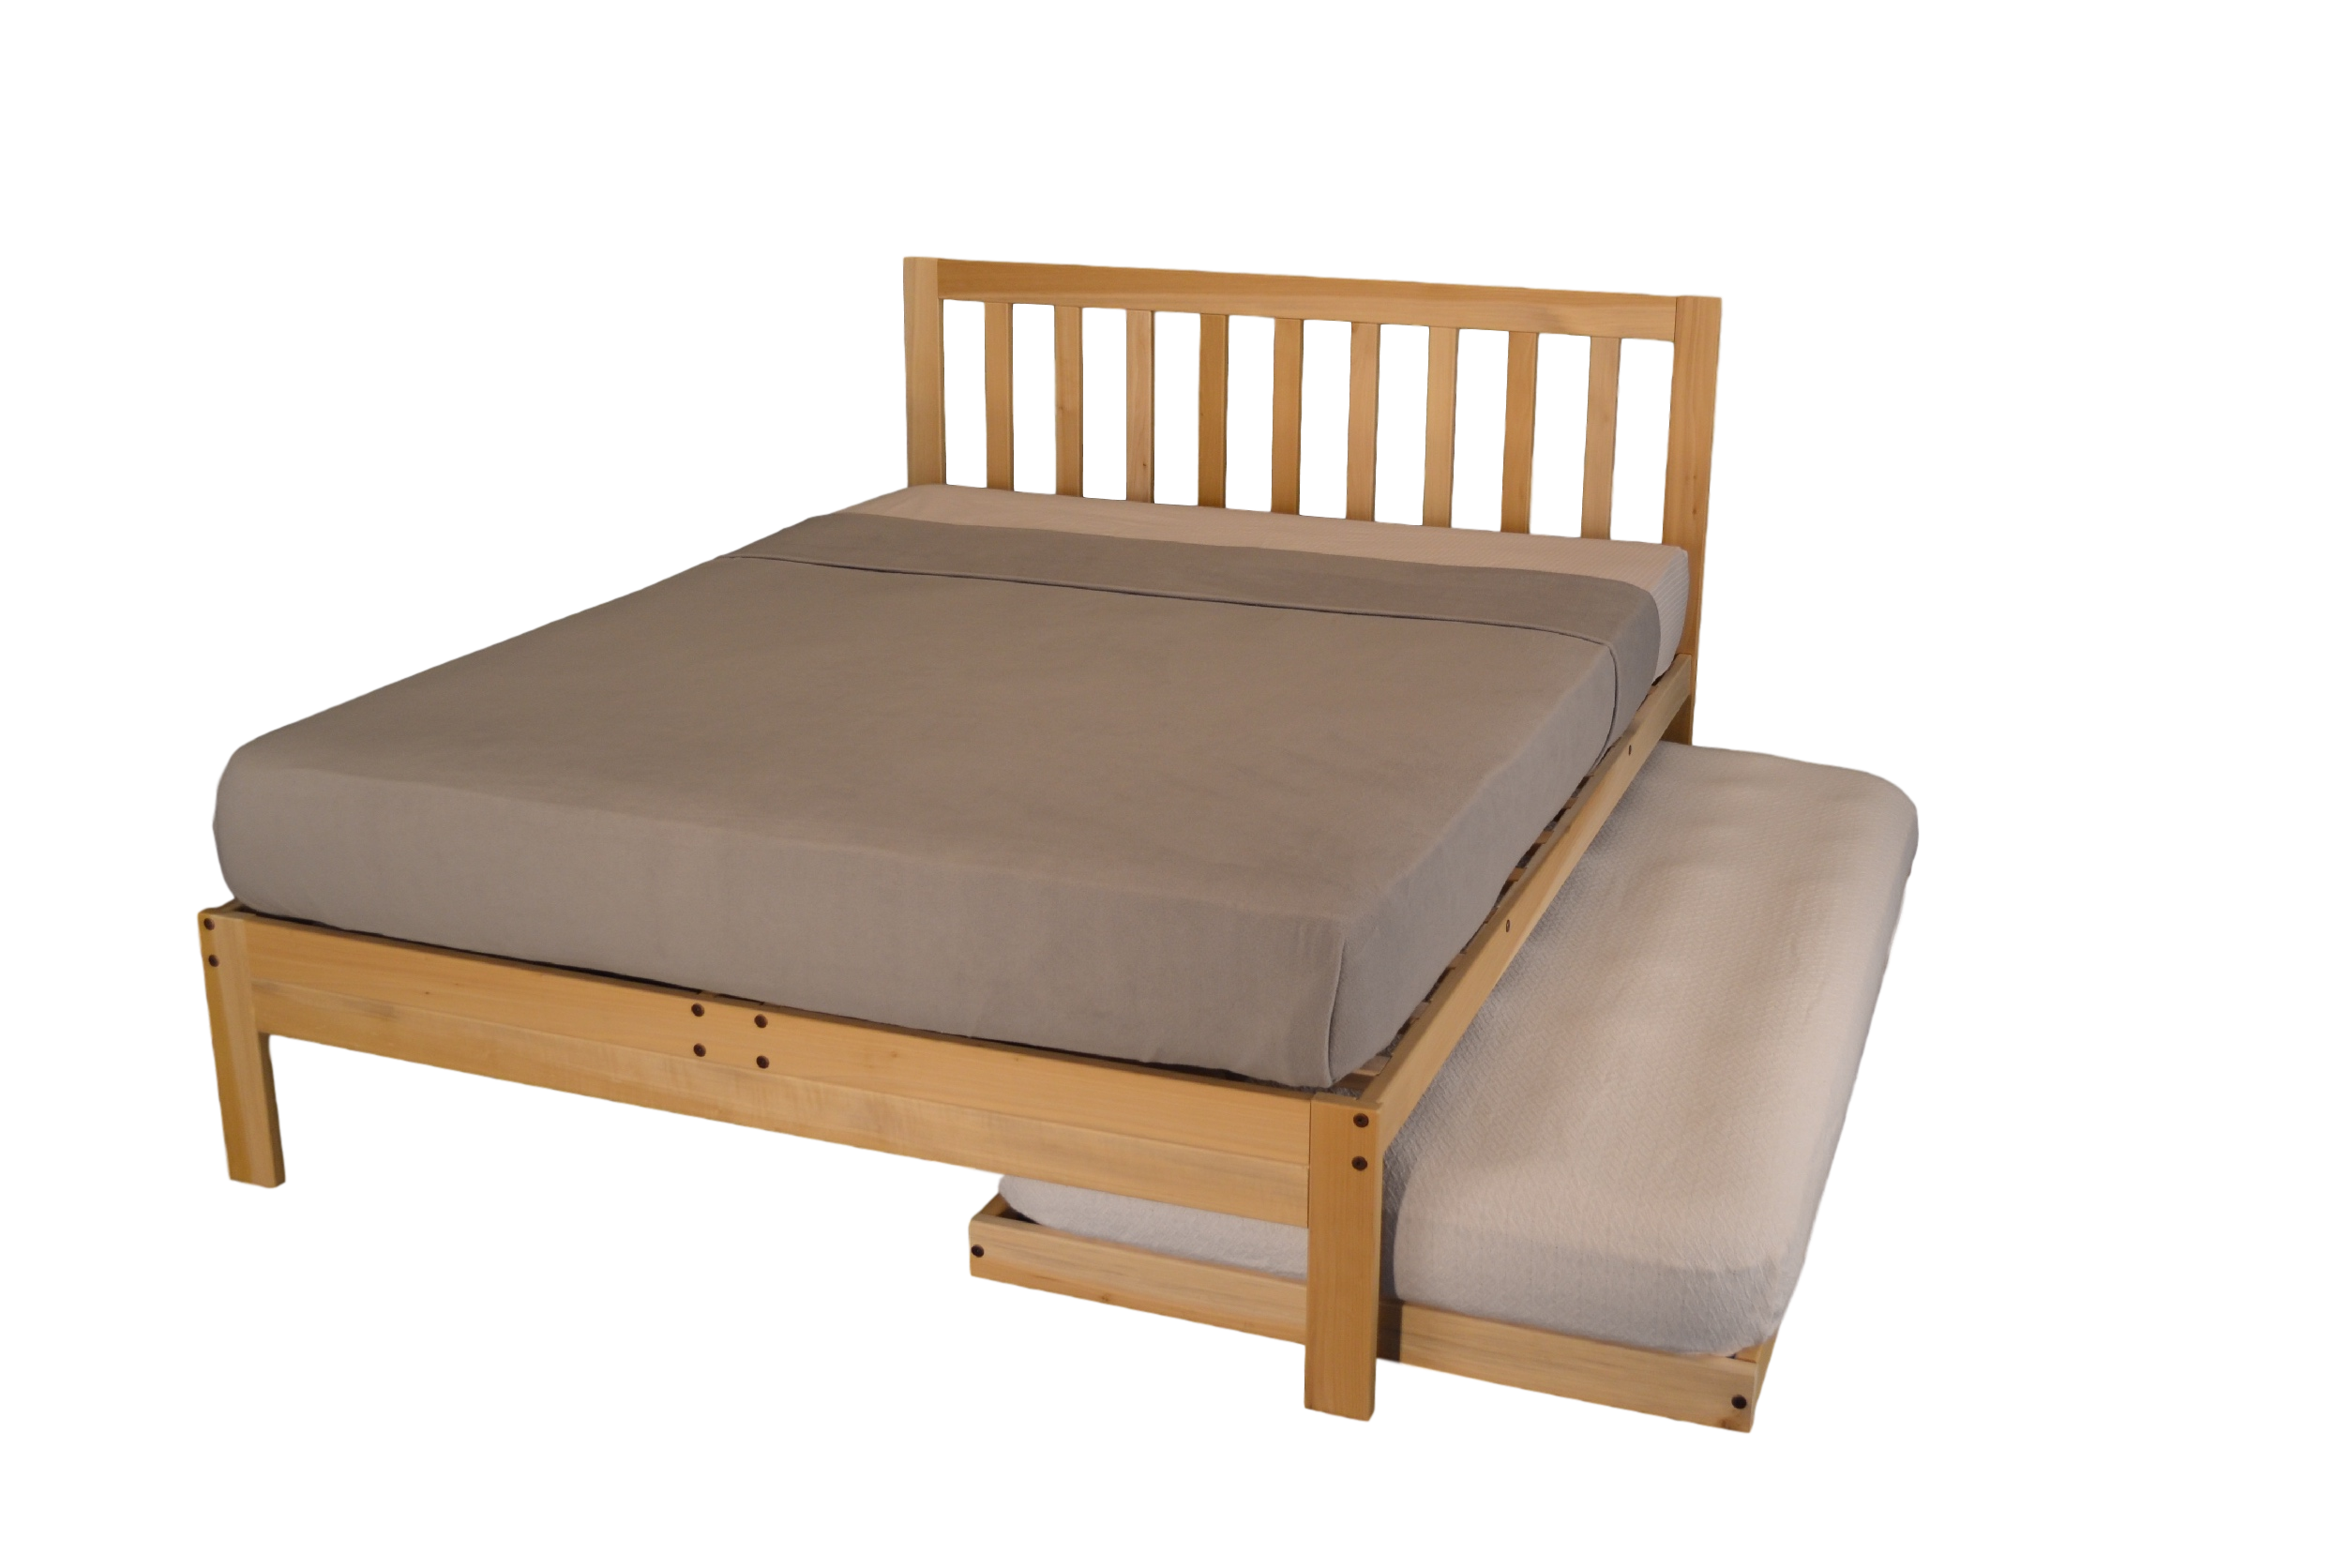 Wood platform png. Unfinished bed with headboard